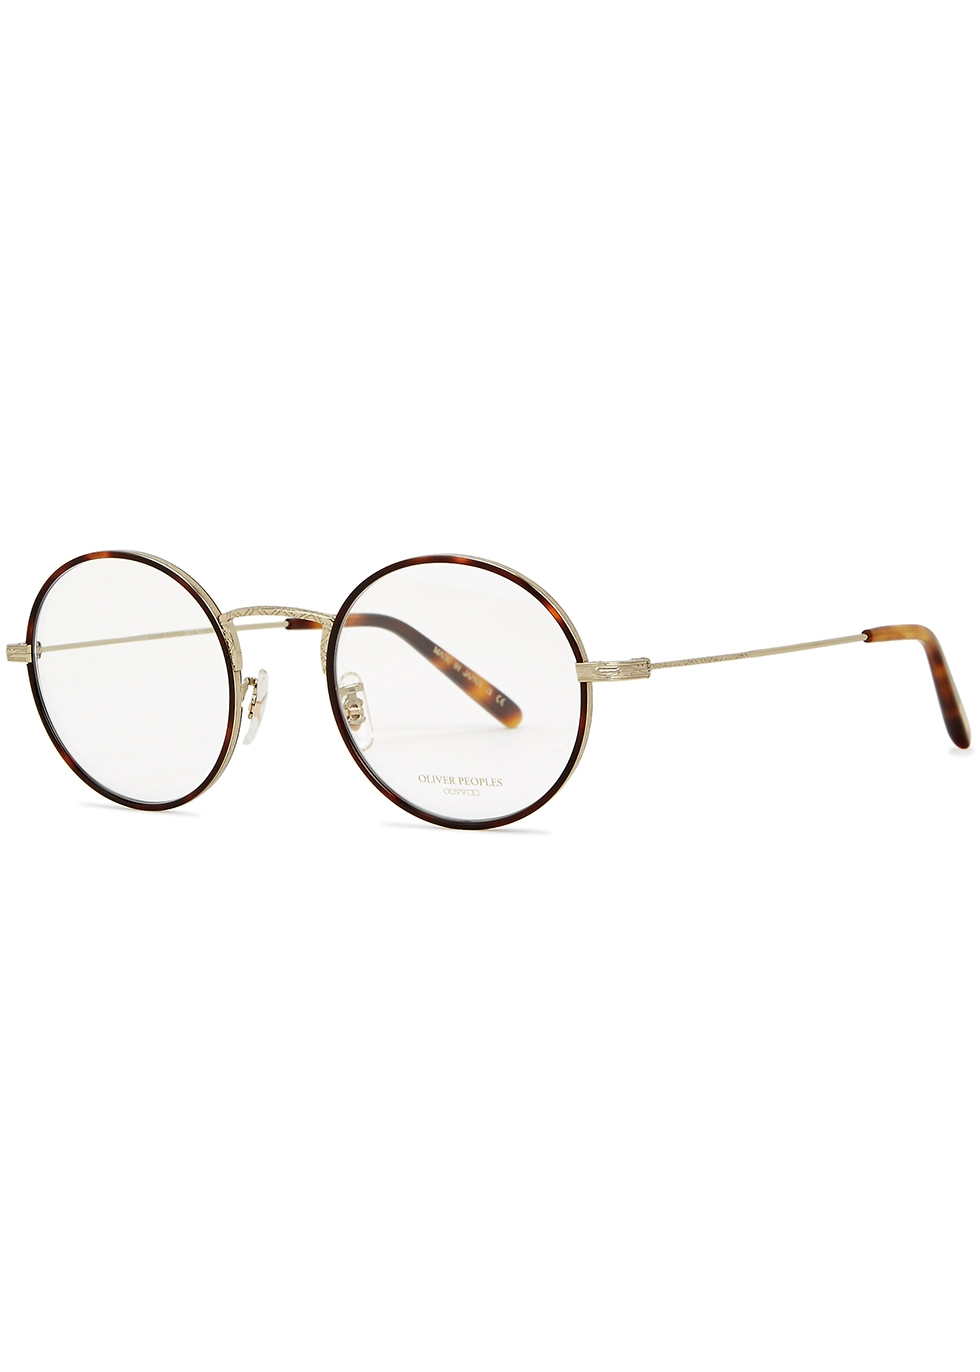 Ellerby mahogany optical glasses - Oliver Peoples